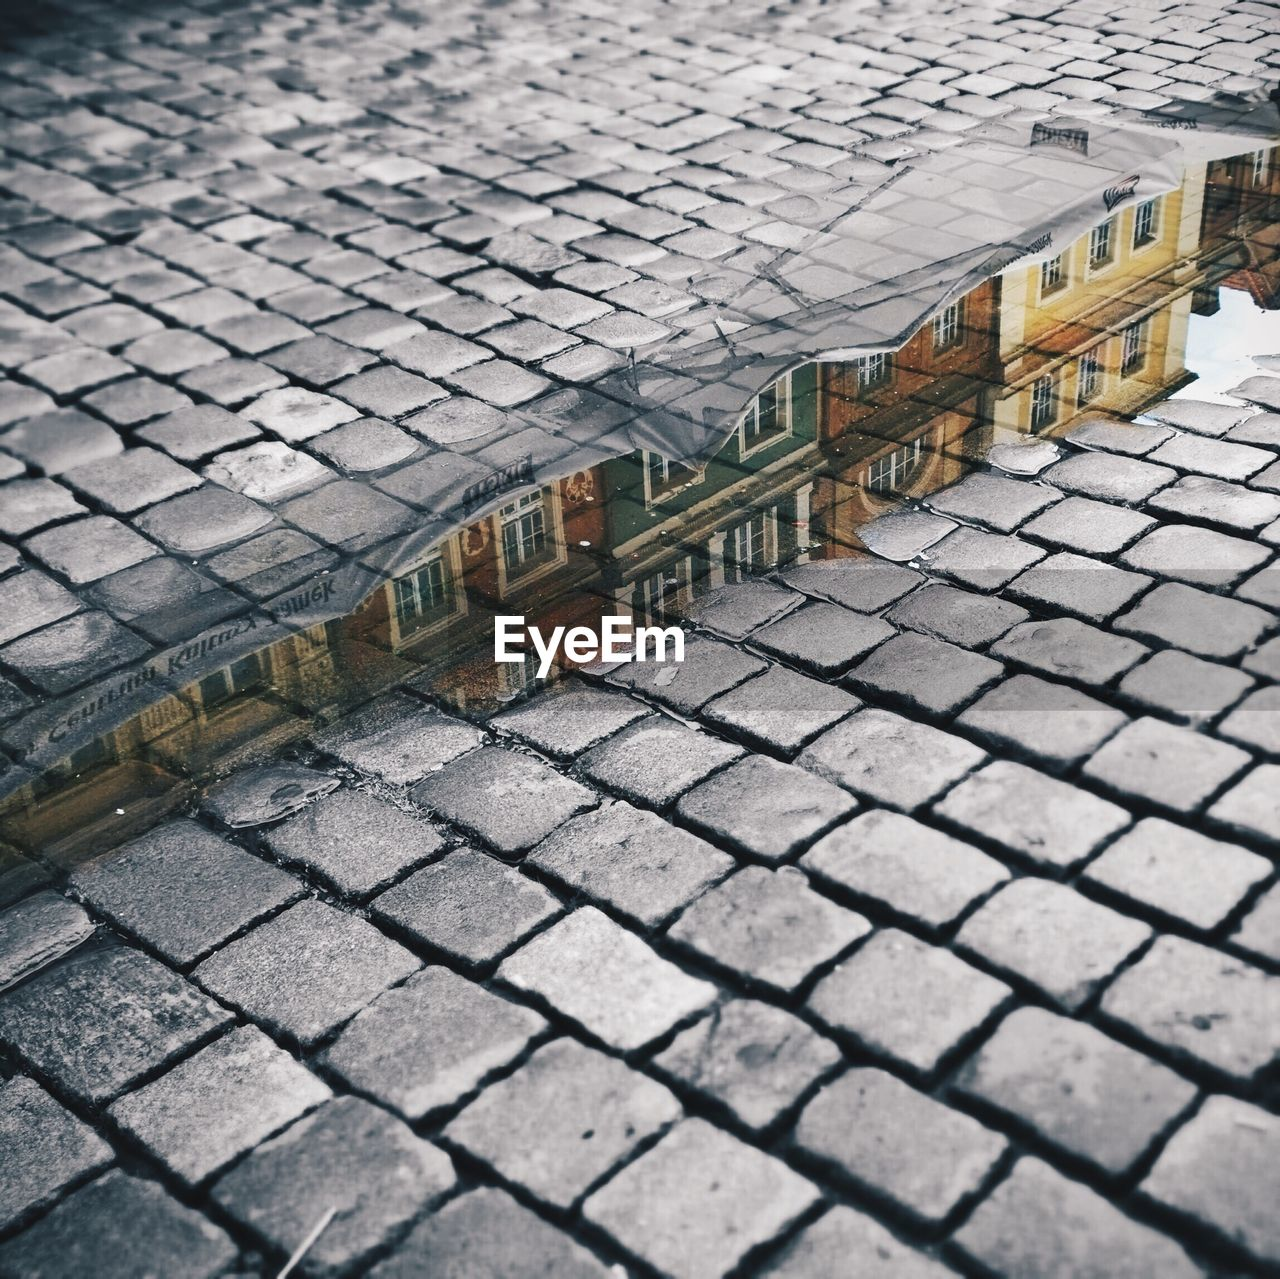 Reflection of buildings in puddle on cobbled street